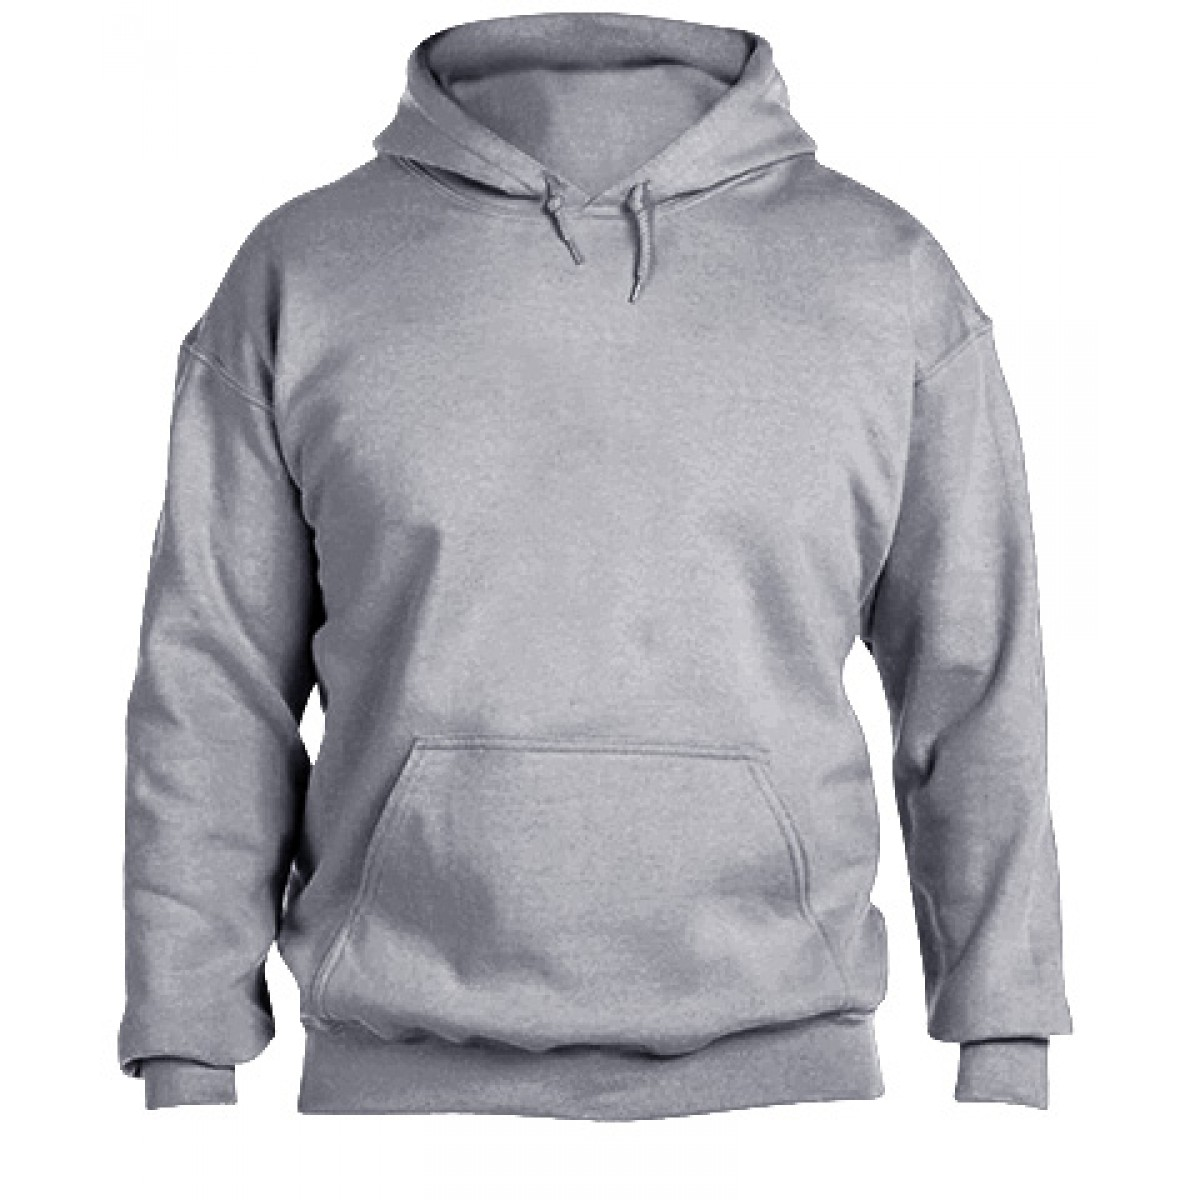 Hooded Sweatshirt 50/50 Heavy Blend -Gray-XL